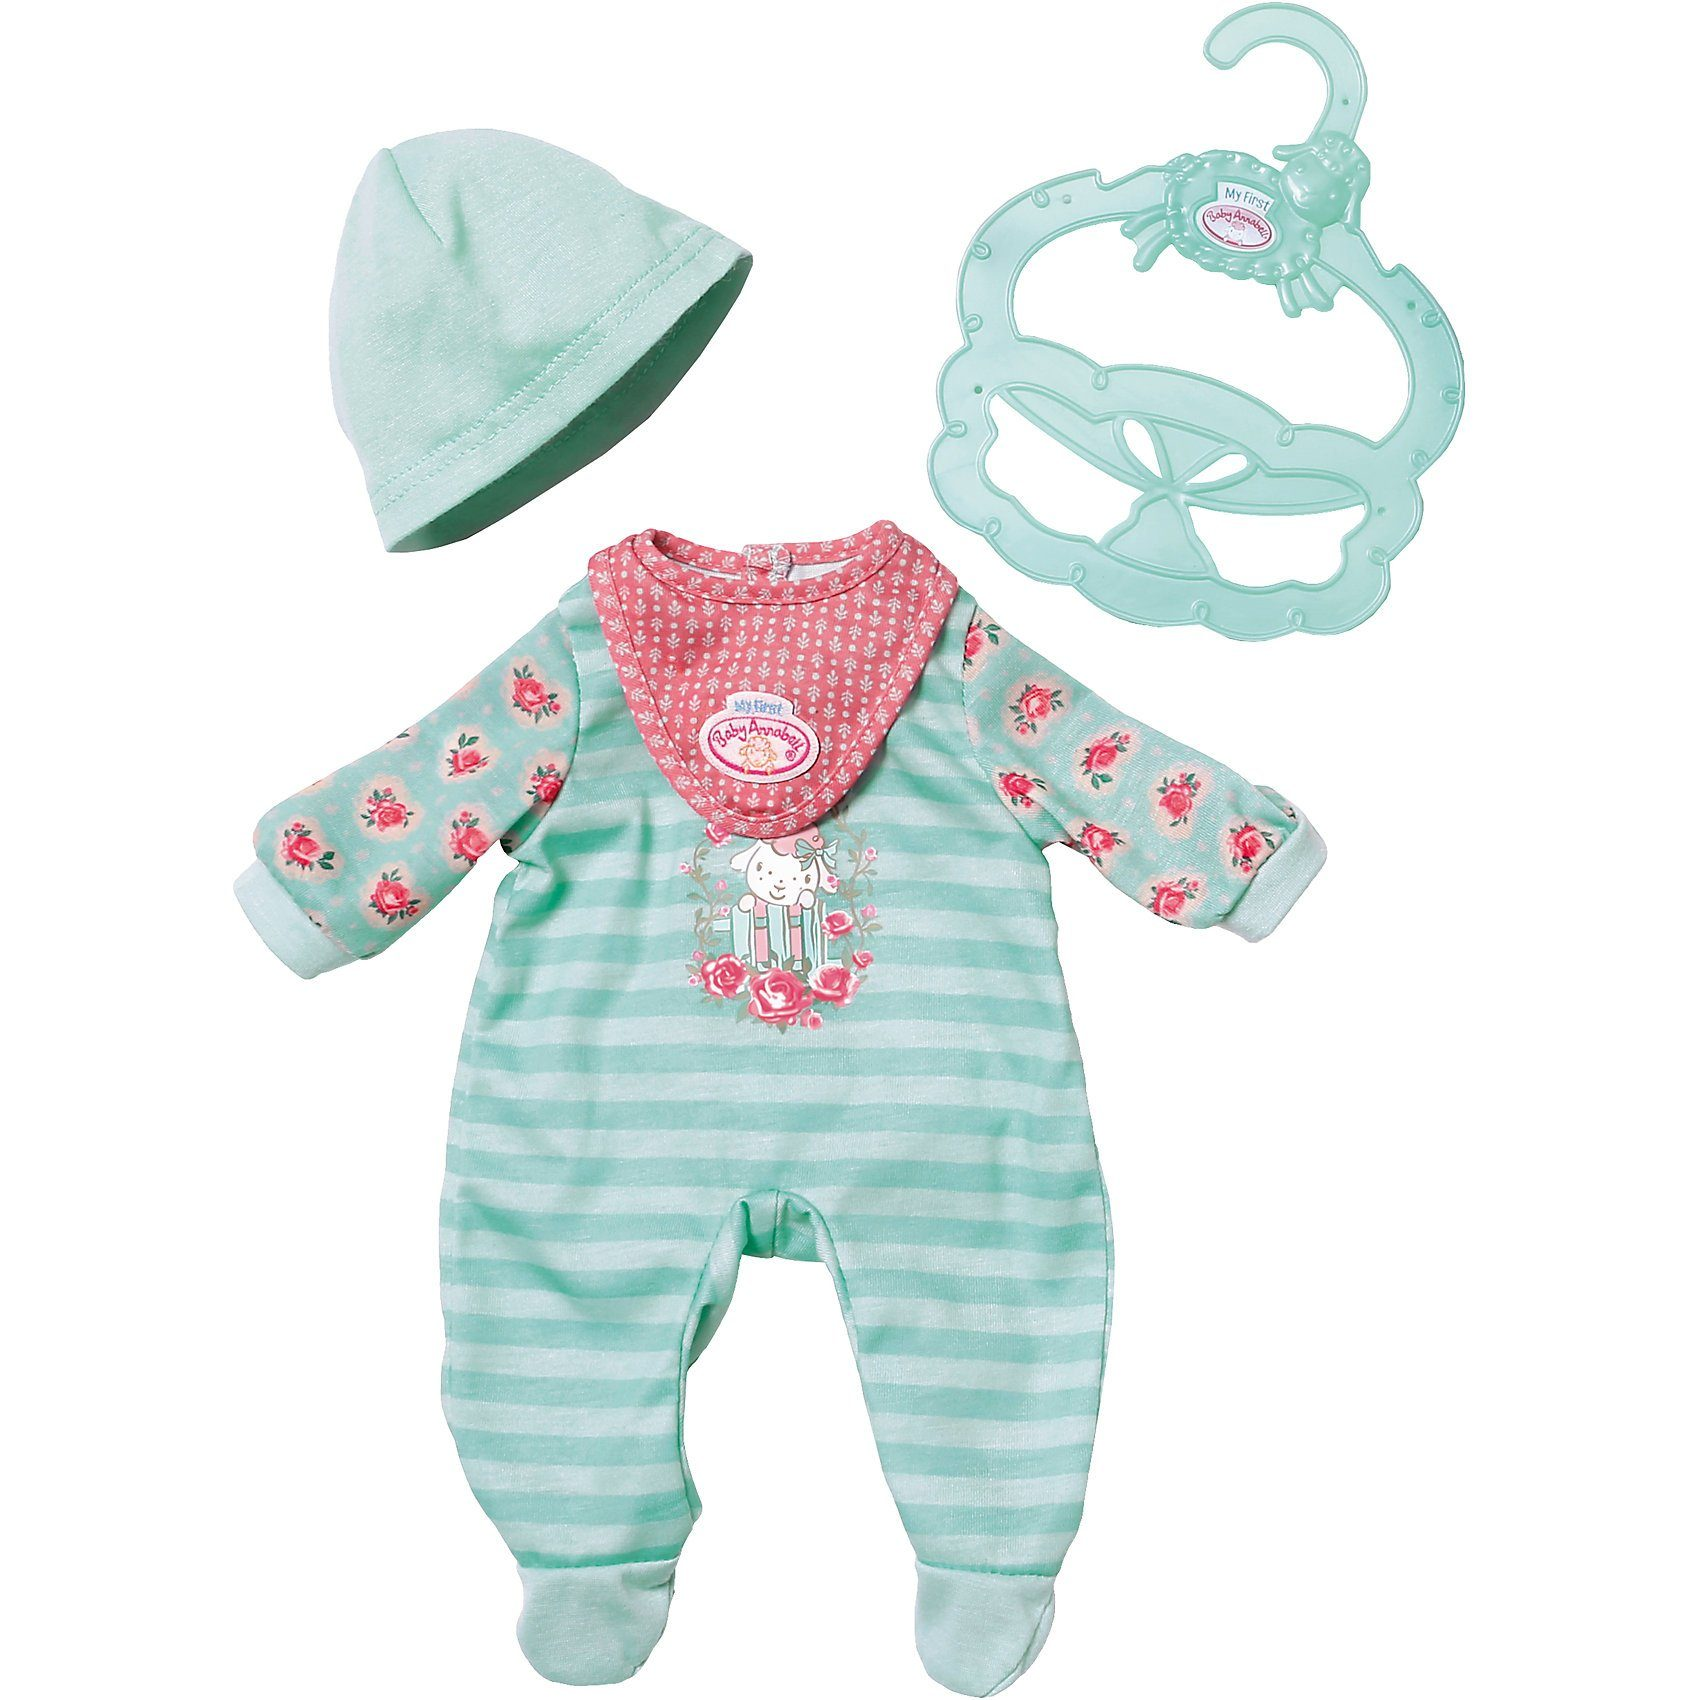 Zapf Creation® My First Baby Annabell® Cozy Outfit Romper